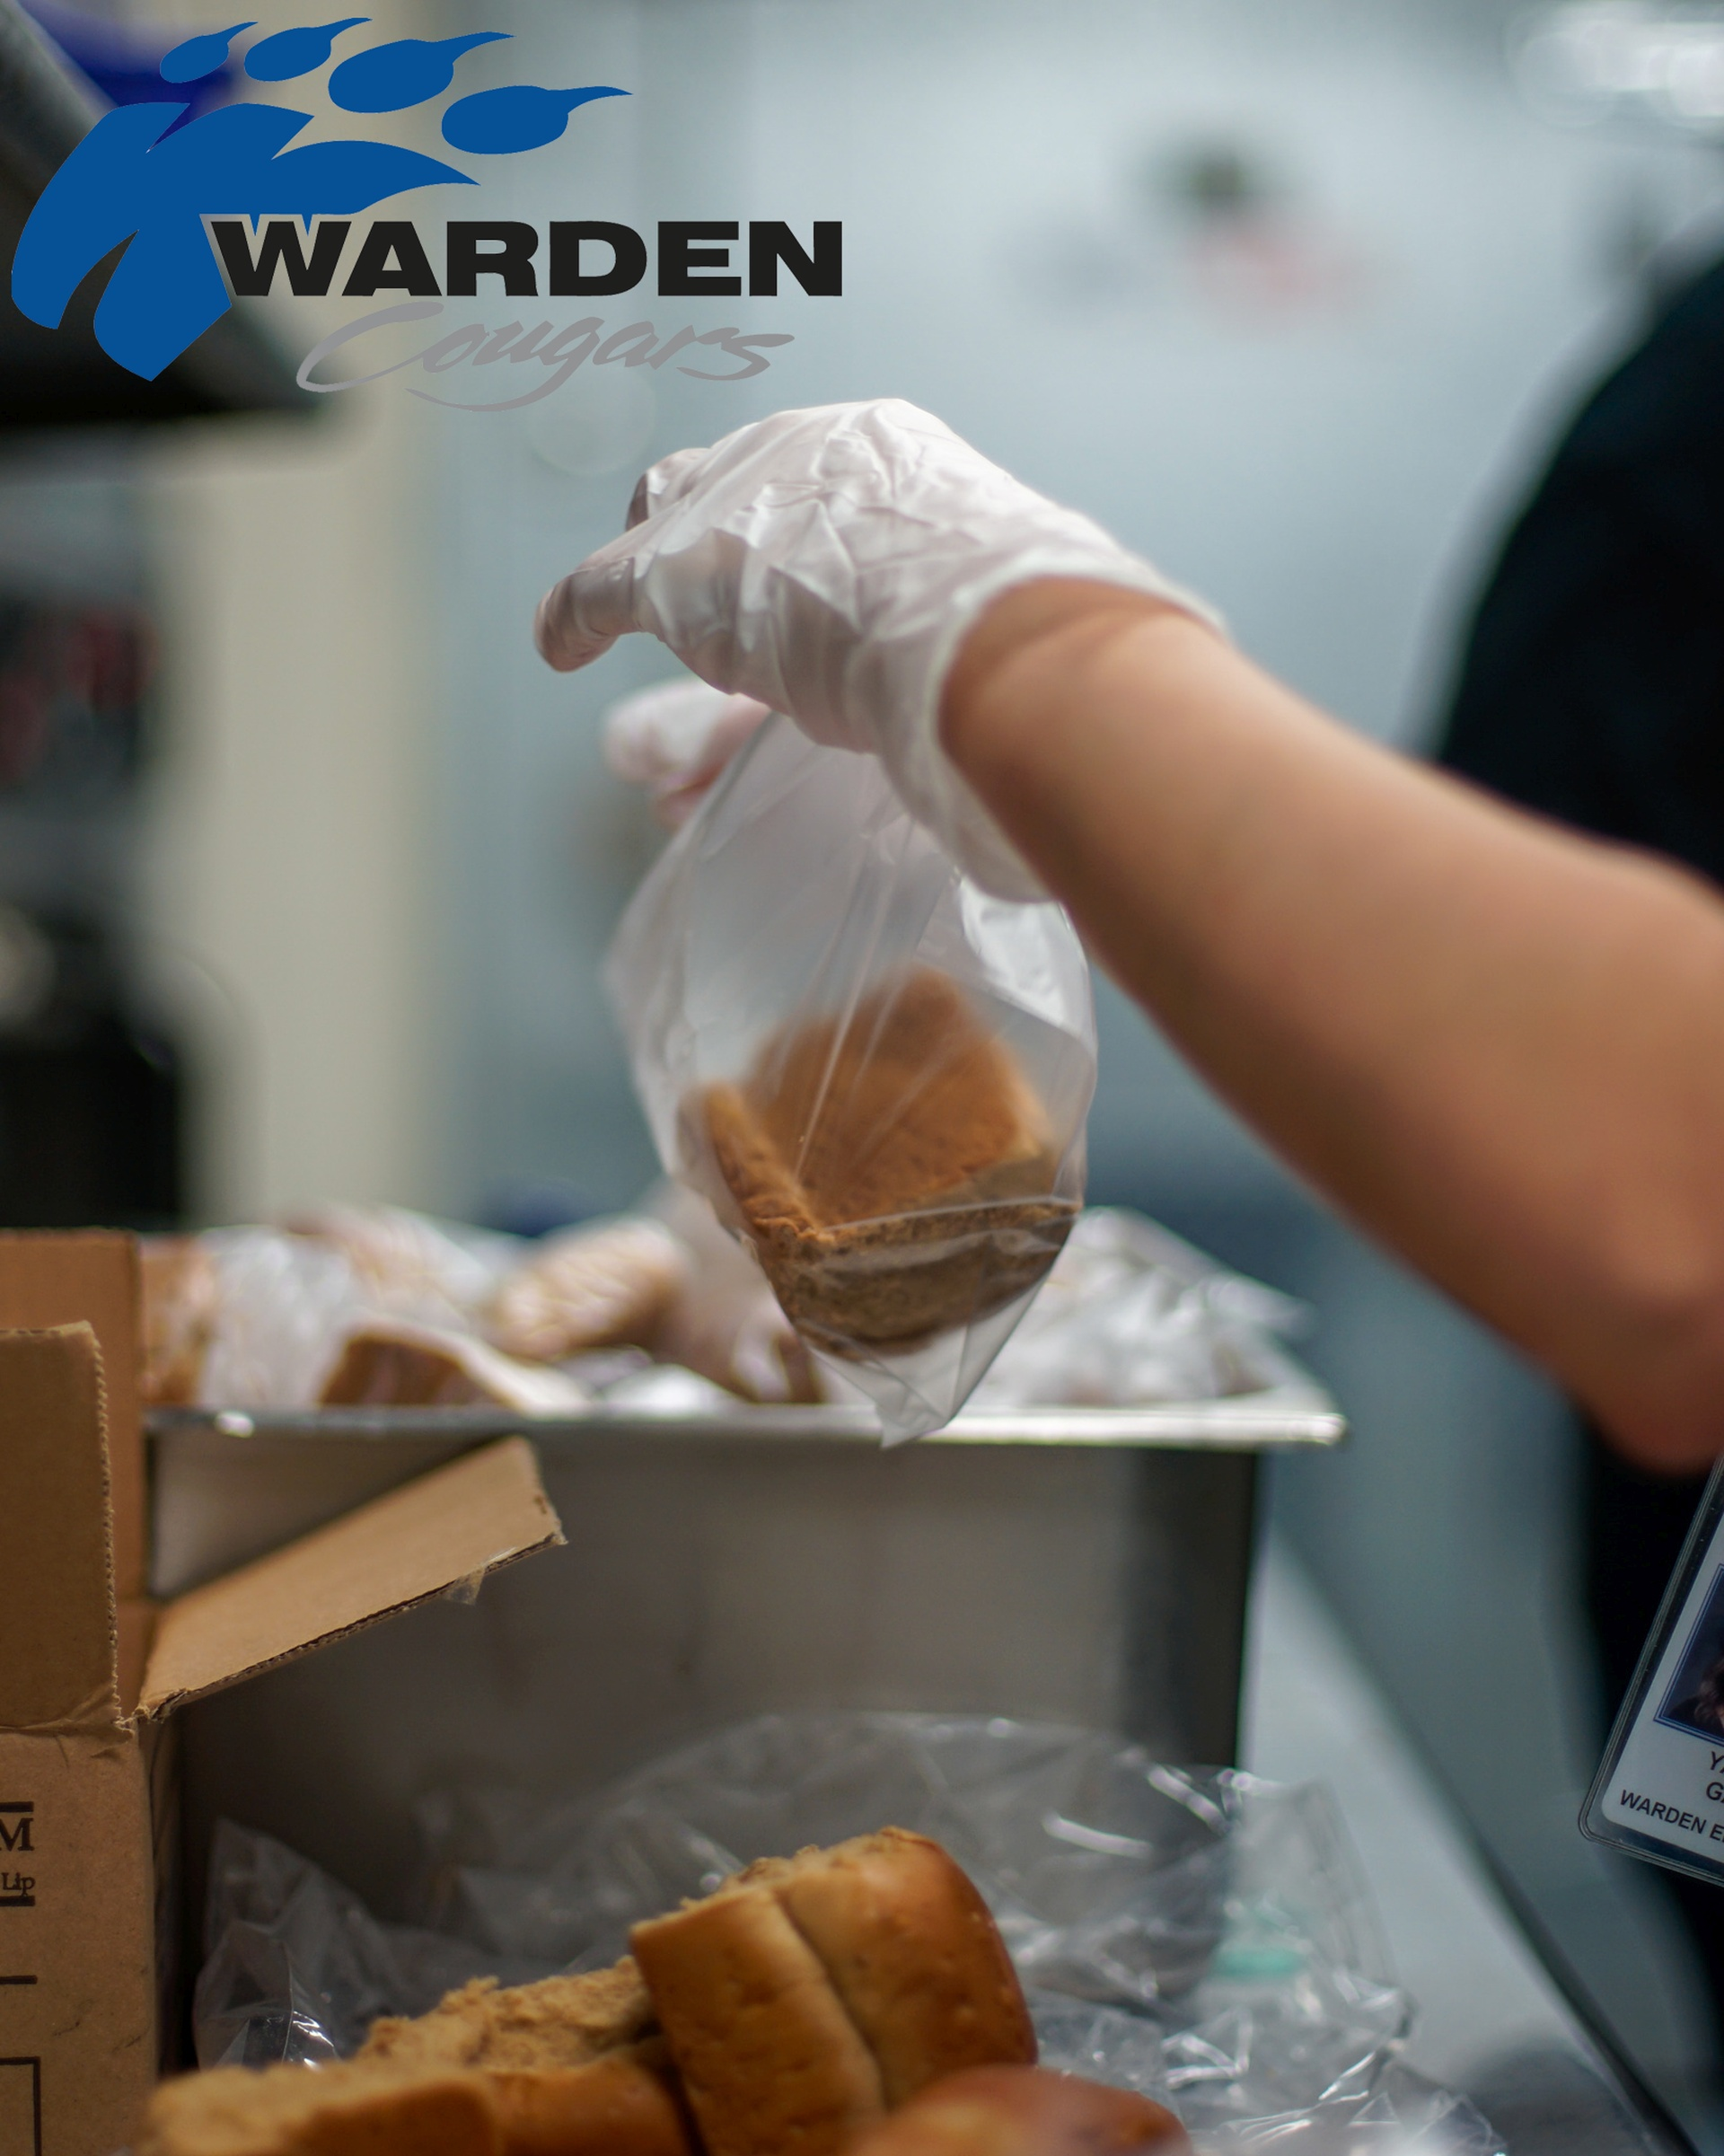 4/13/2020, MEALS and ENRICHMENT PACKETS FOR WARDEN CHILDREN GOING OUT TODAY